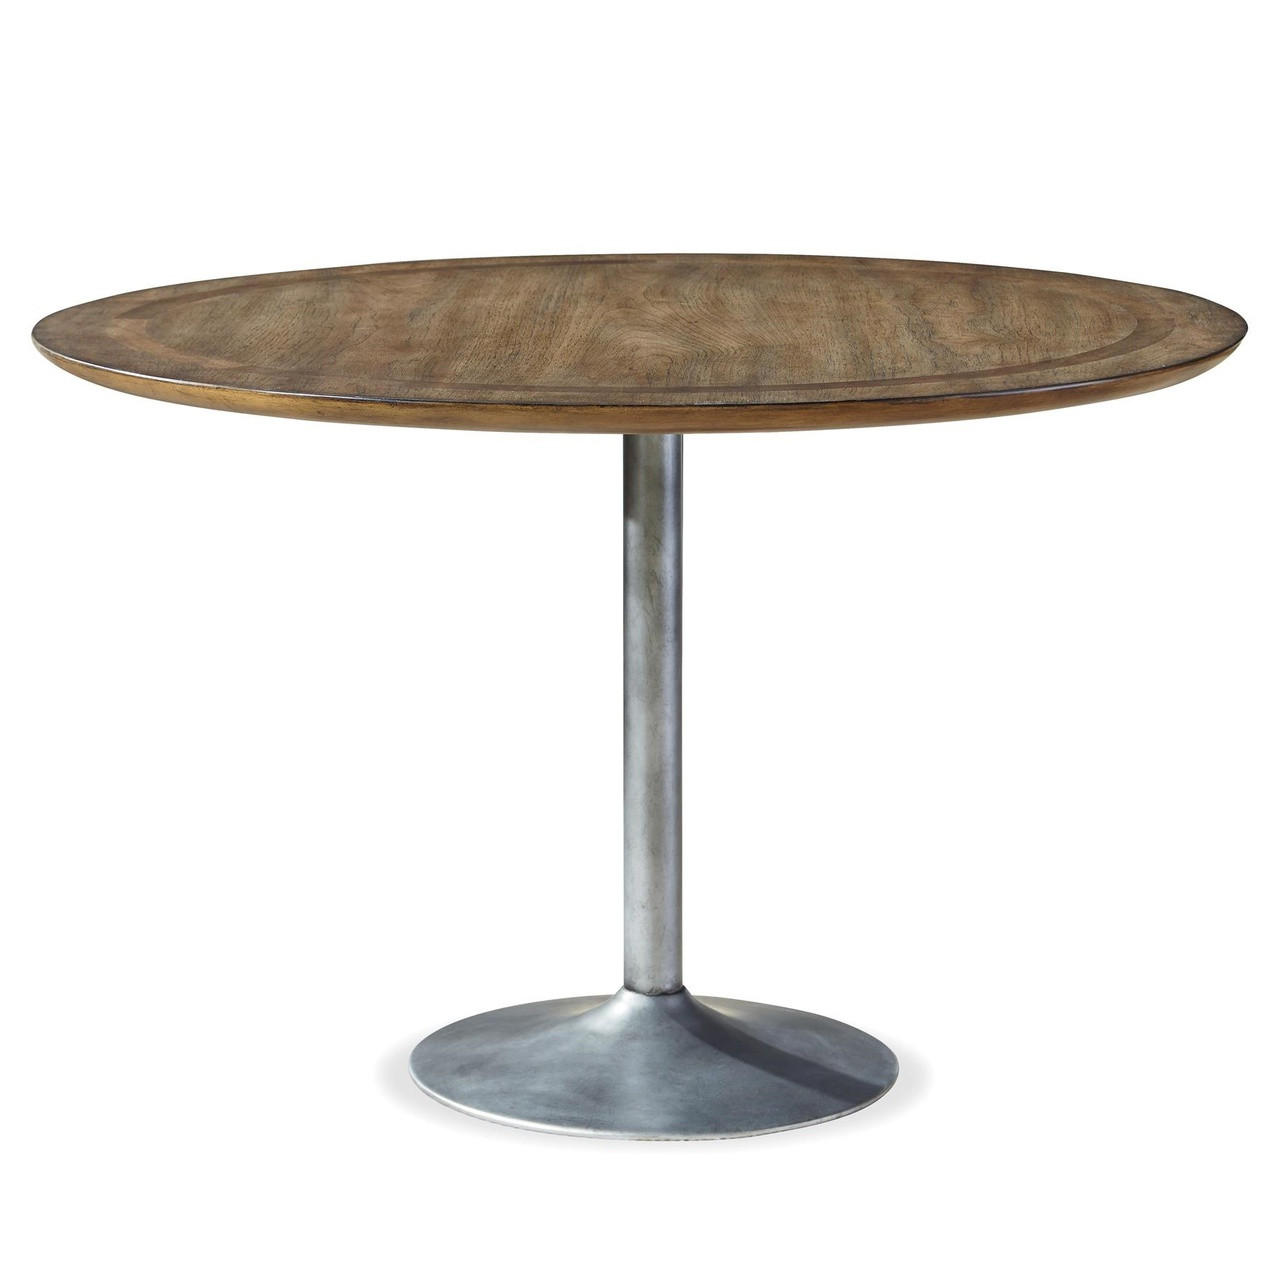 Maison Industrial Metal Pedestal Round Dining Table 48 Zin Home